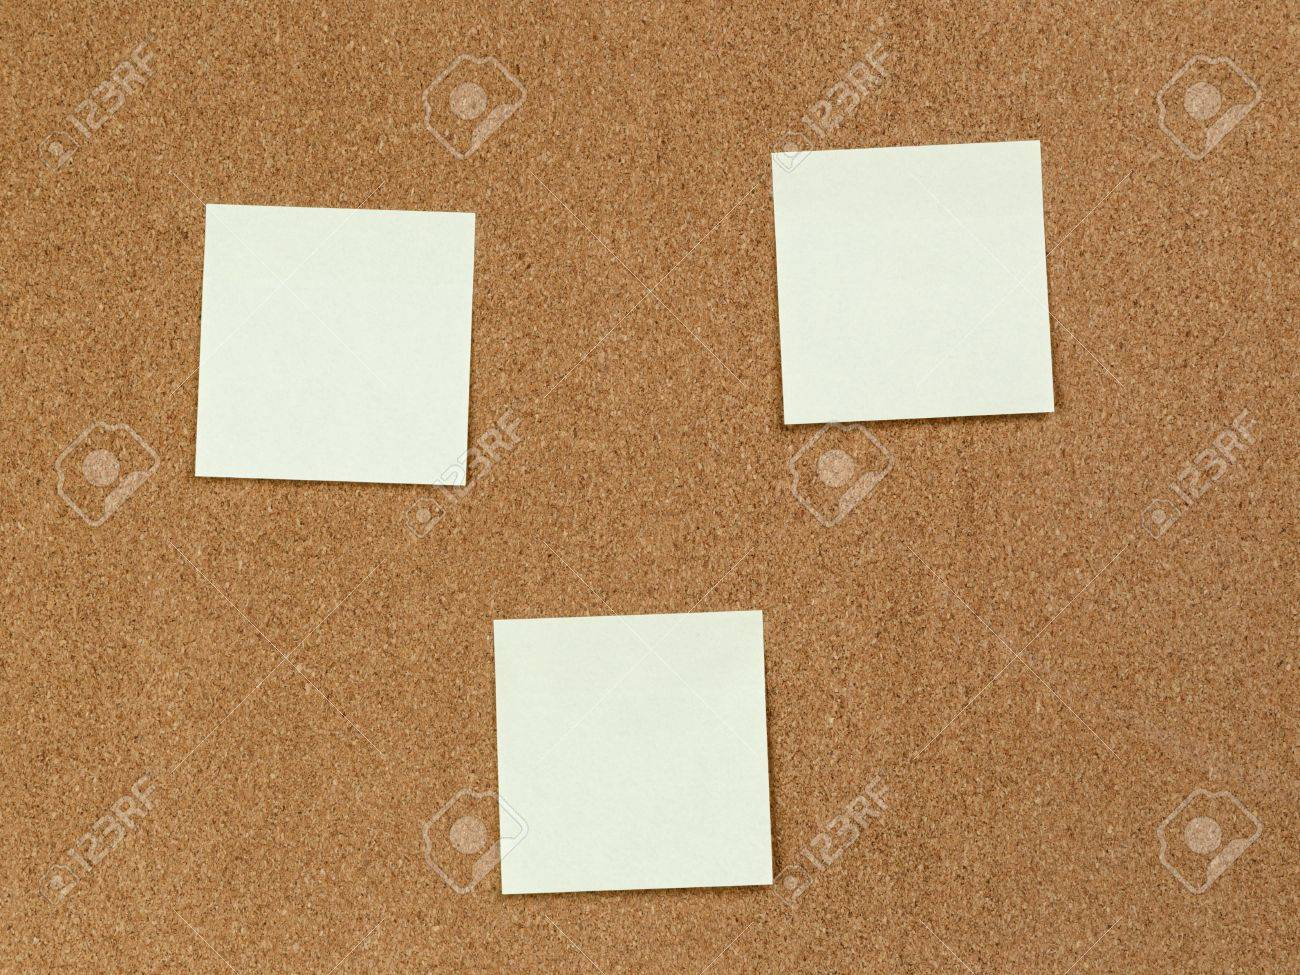 Notes Reminders On The Cork Board, Template Stock Photo, Picture ...